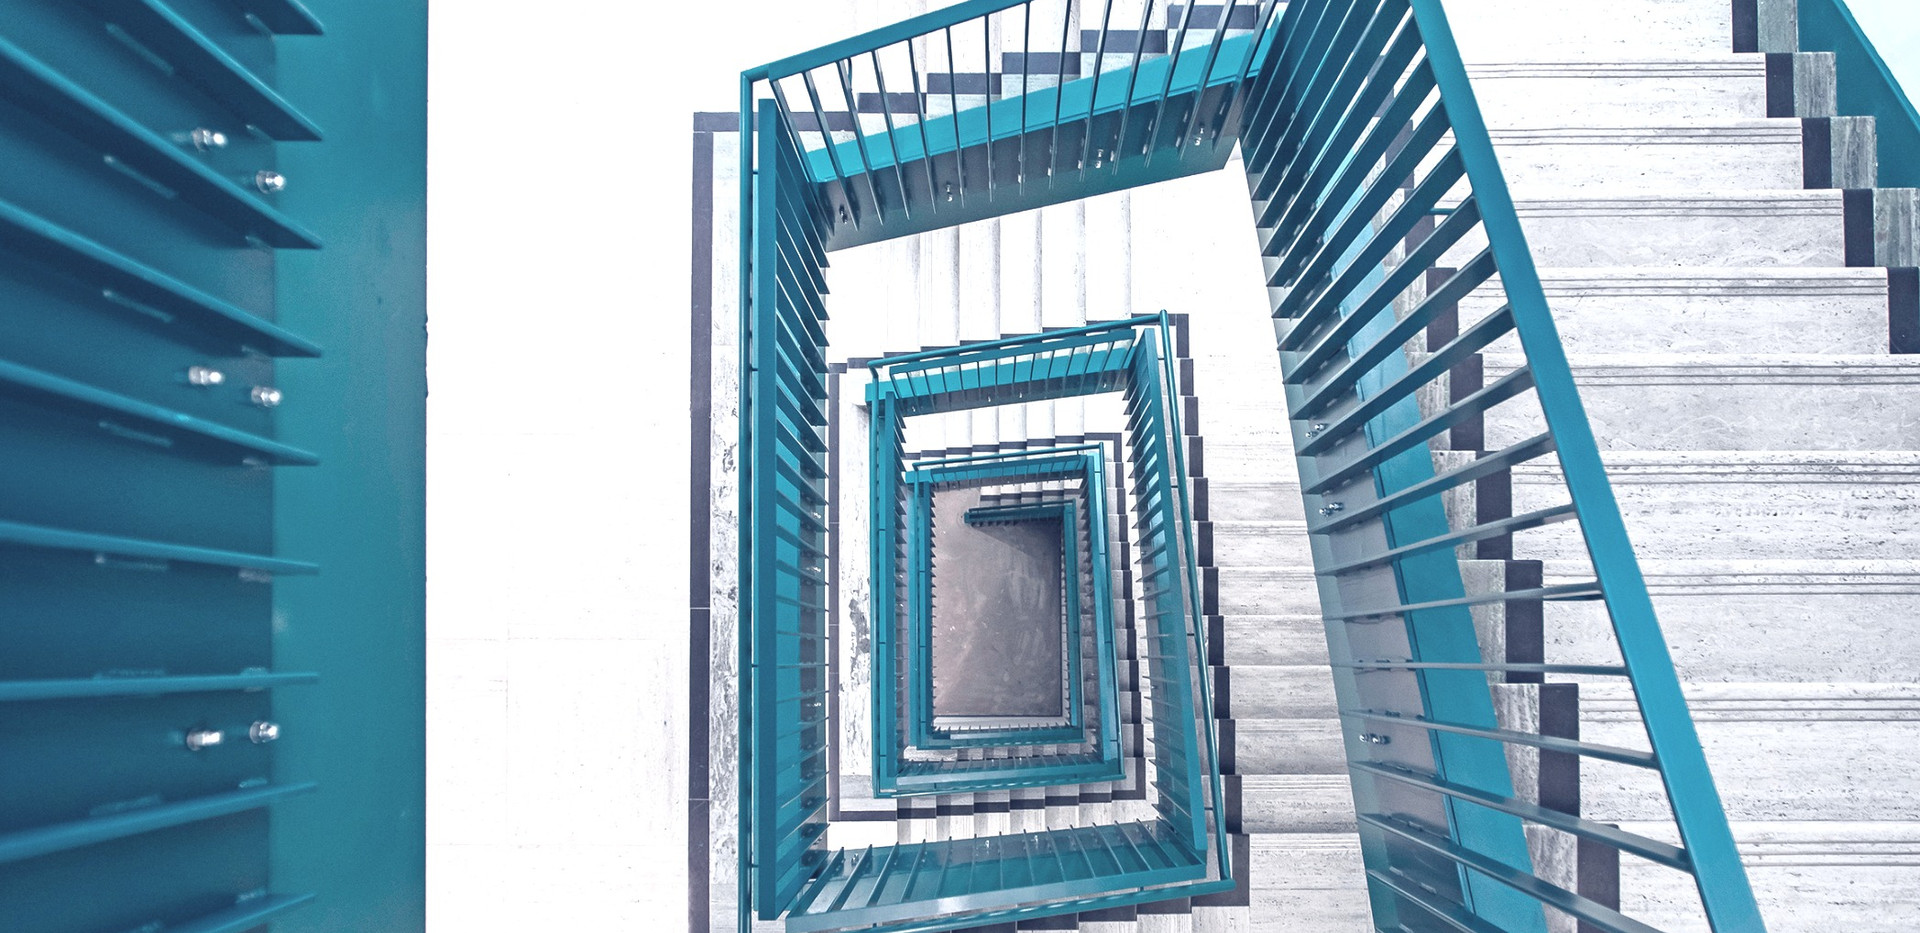 LSA_stair_AH_edited.jpg